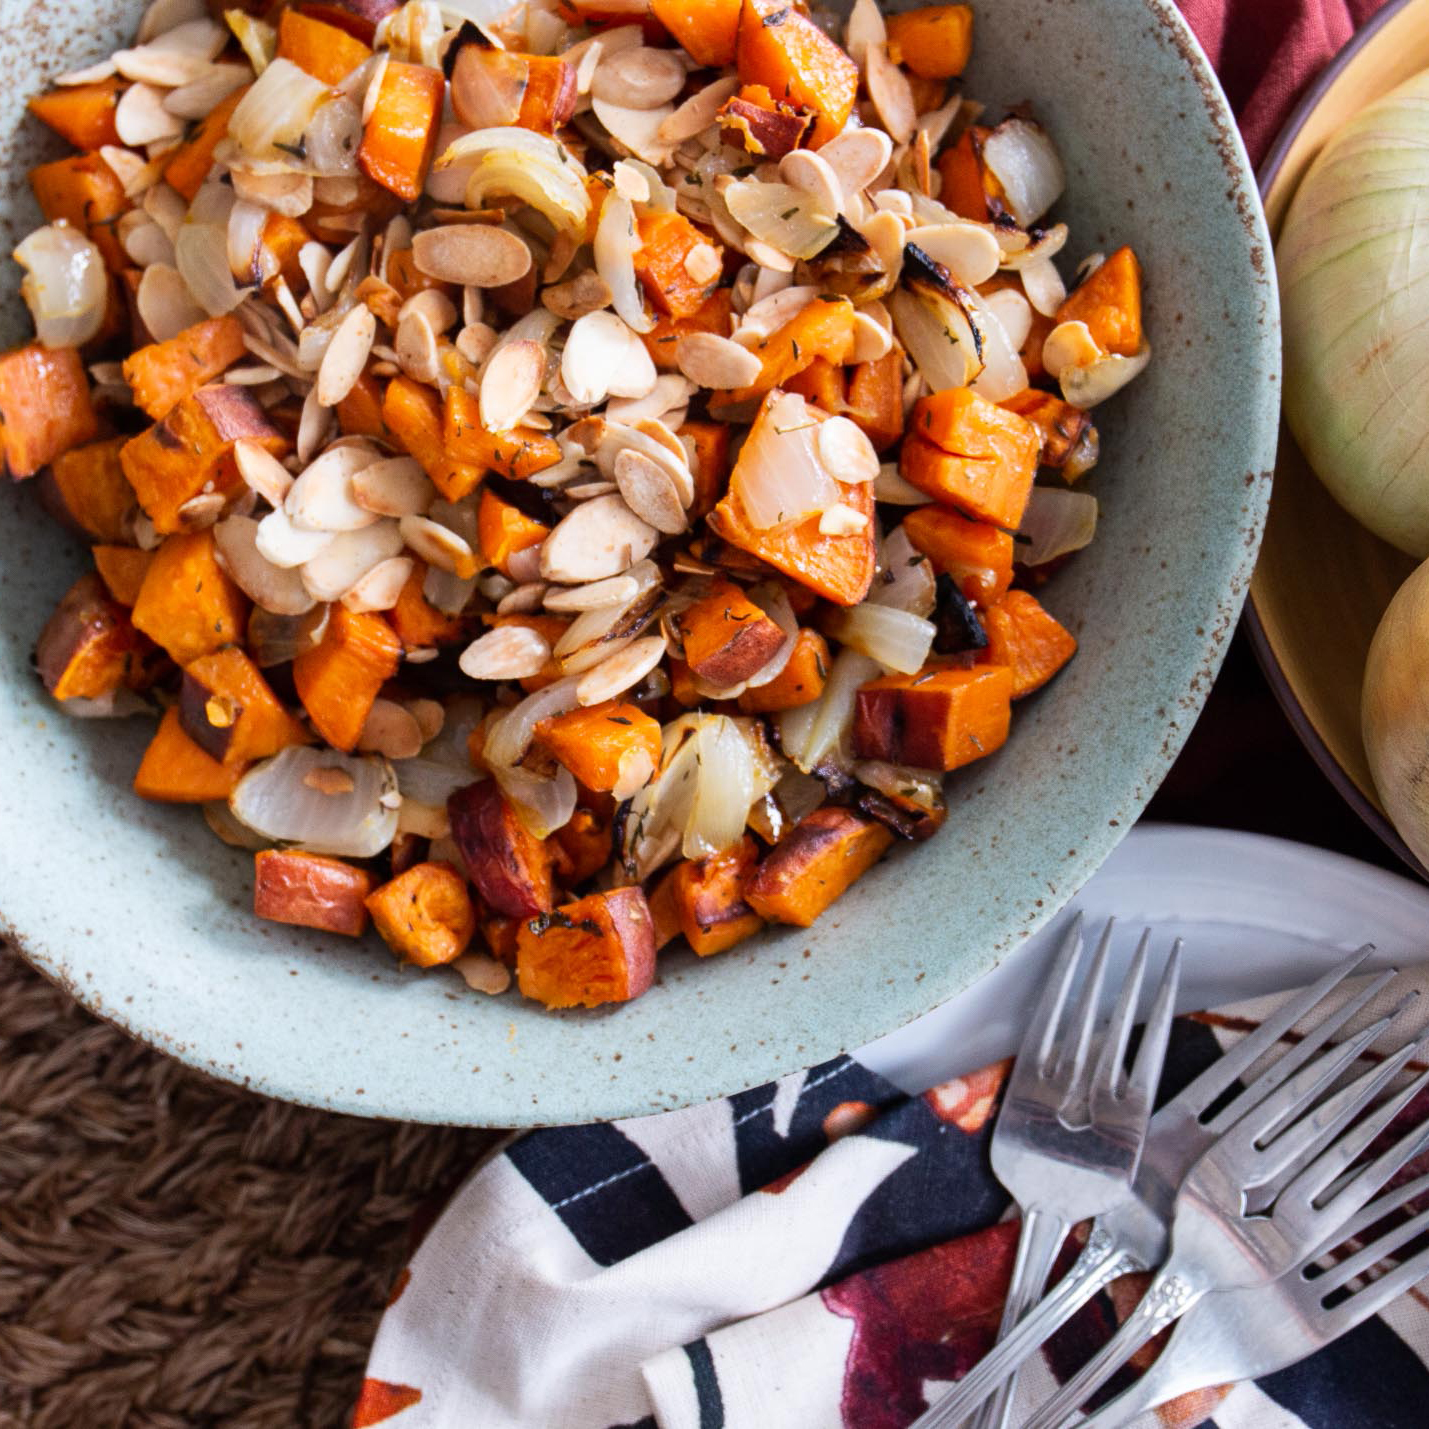 Roasted sweet potatoes and onions in a blue bowl